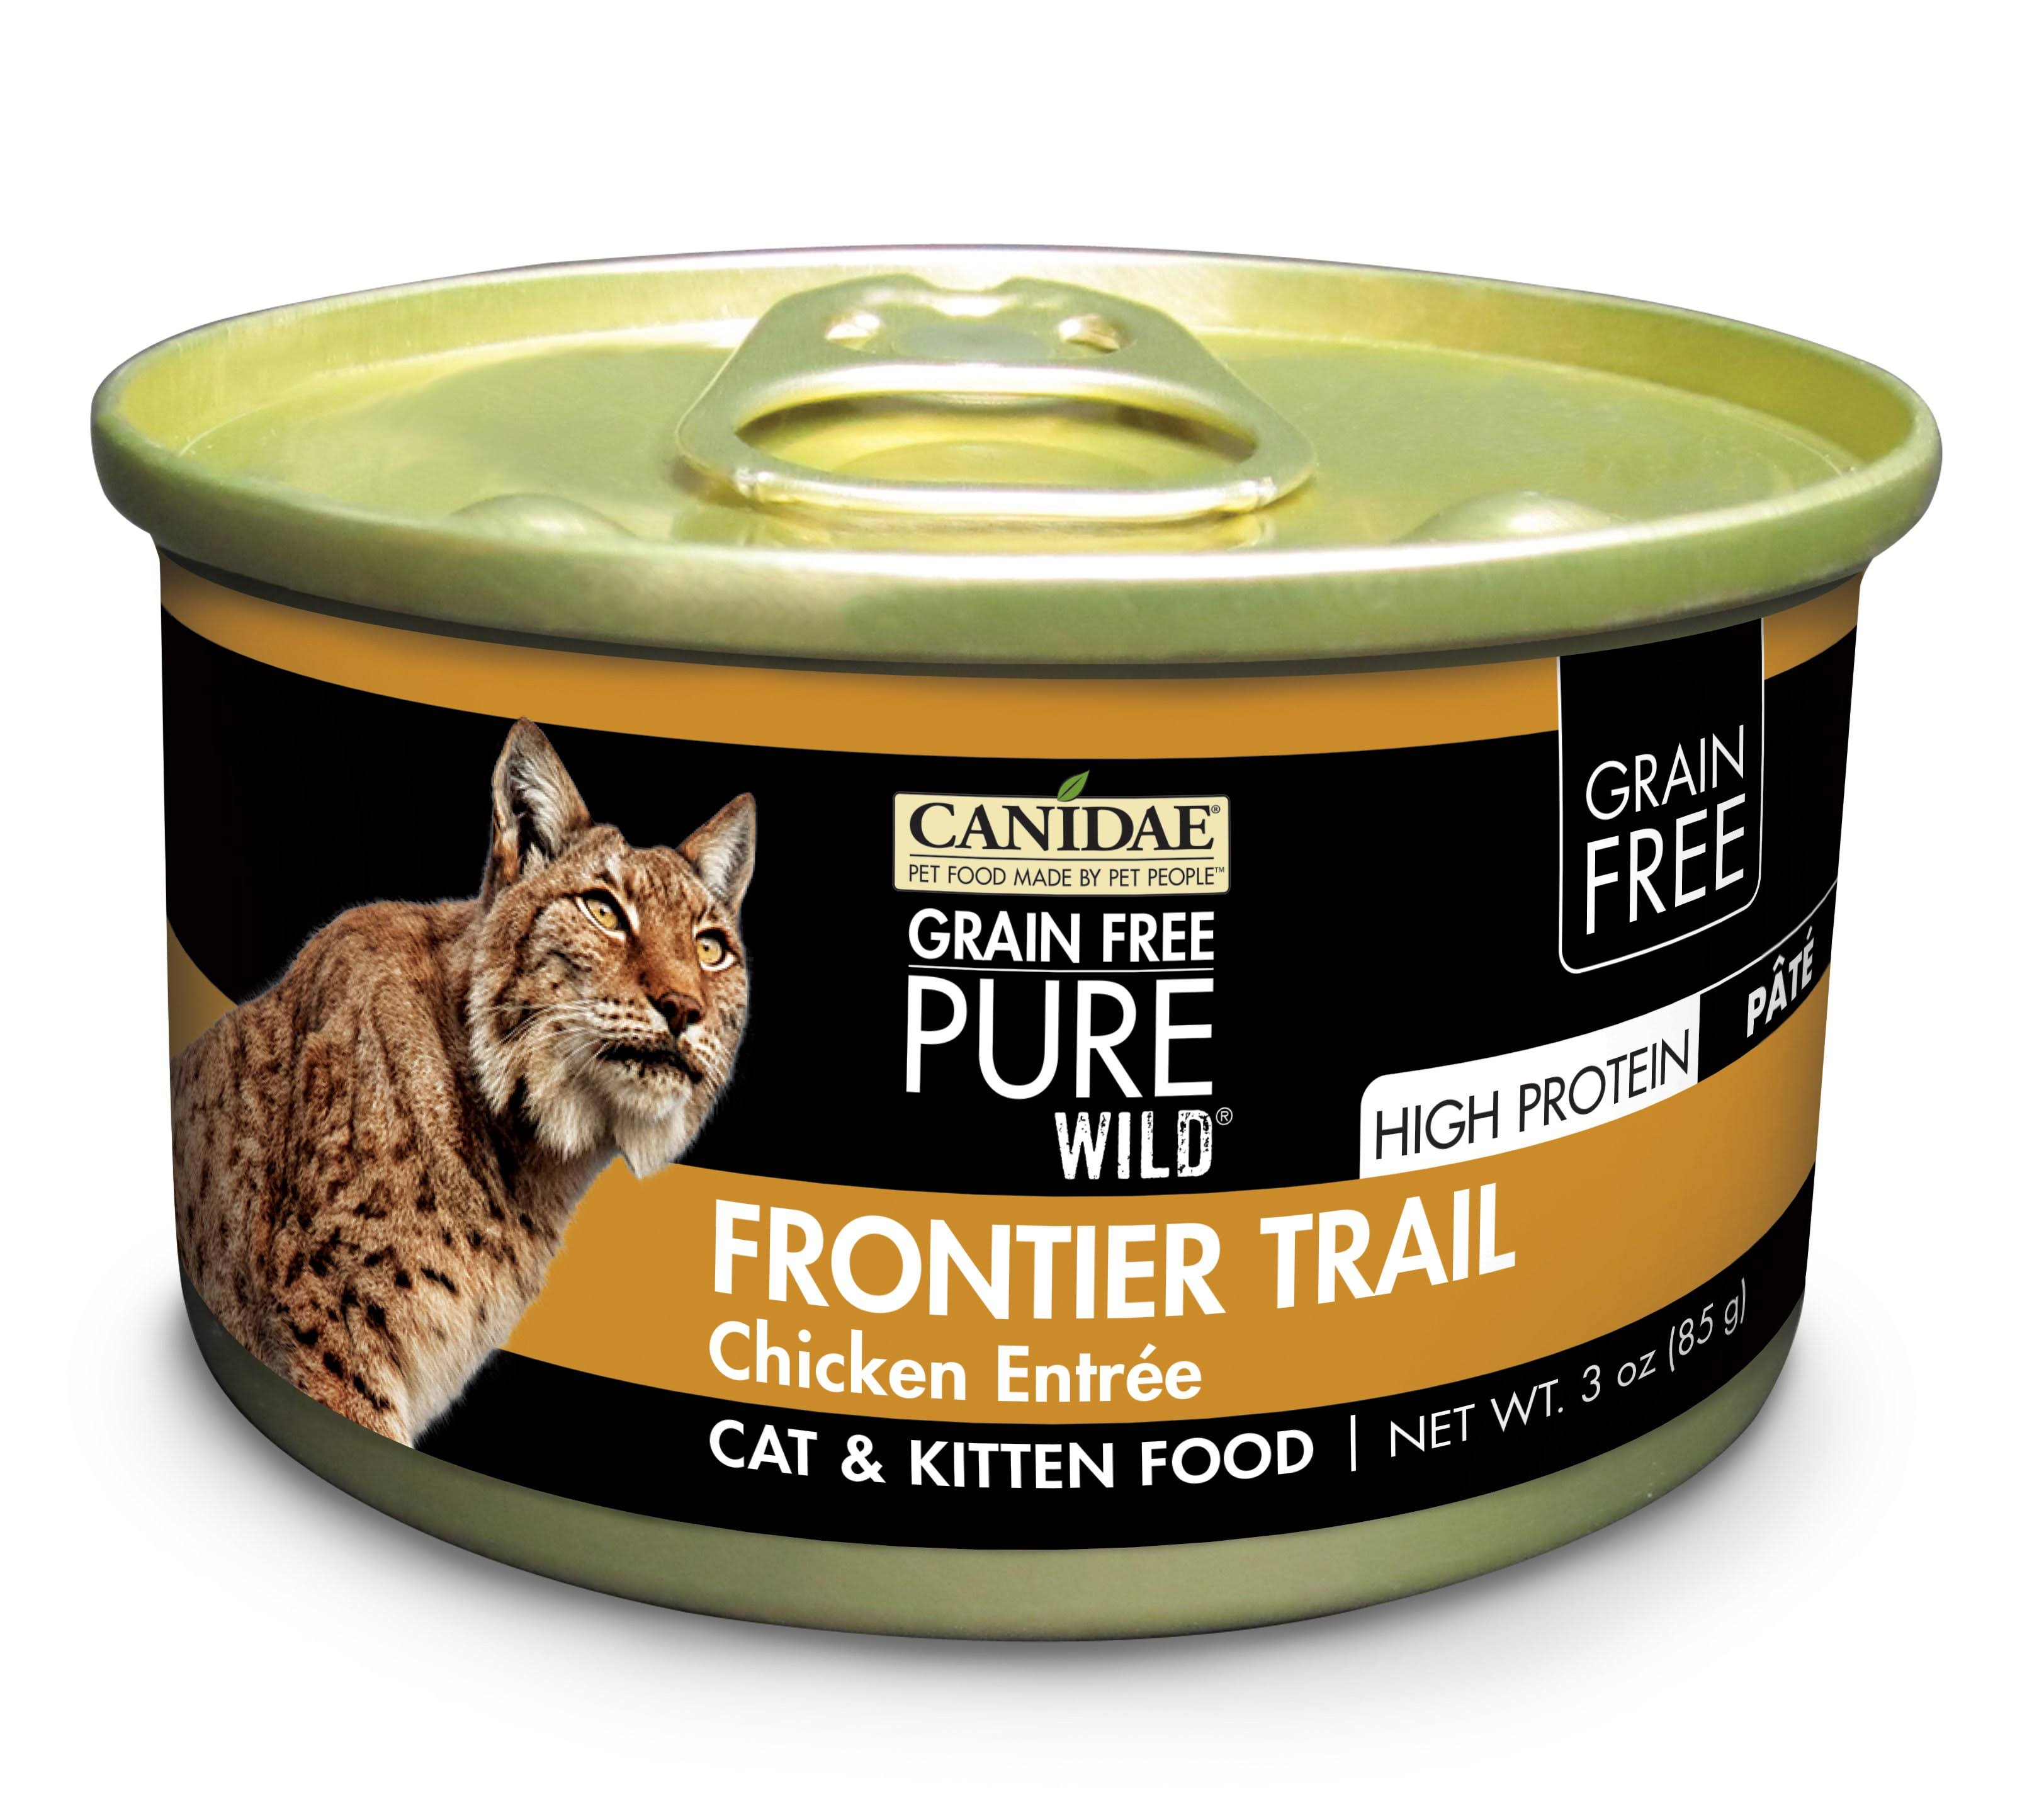 Canidae GF Pure Wild Frontier Trail Chicken Entree Cat Food - 3oz